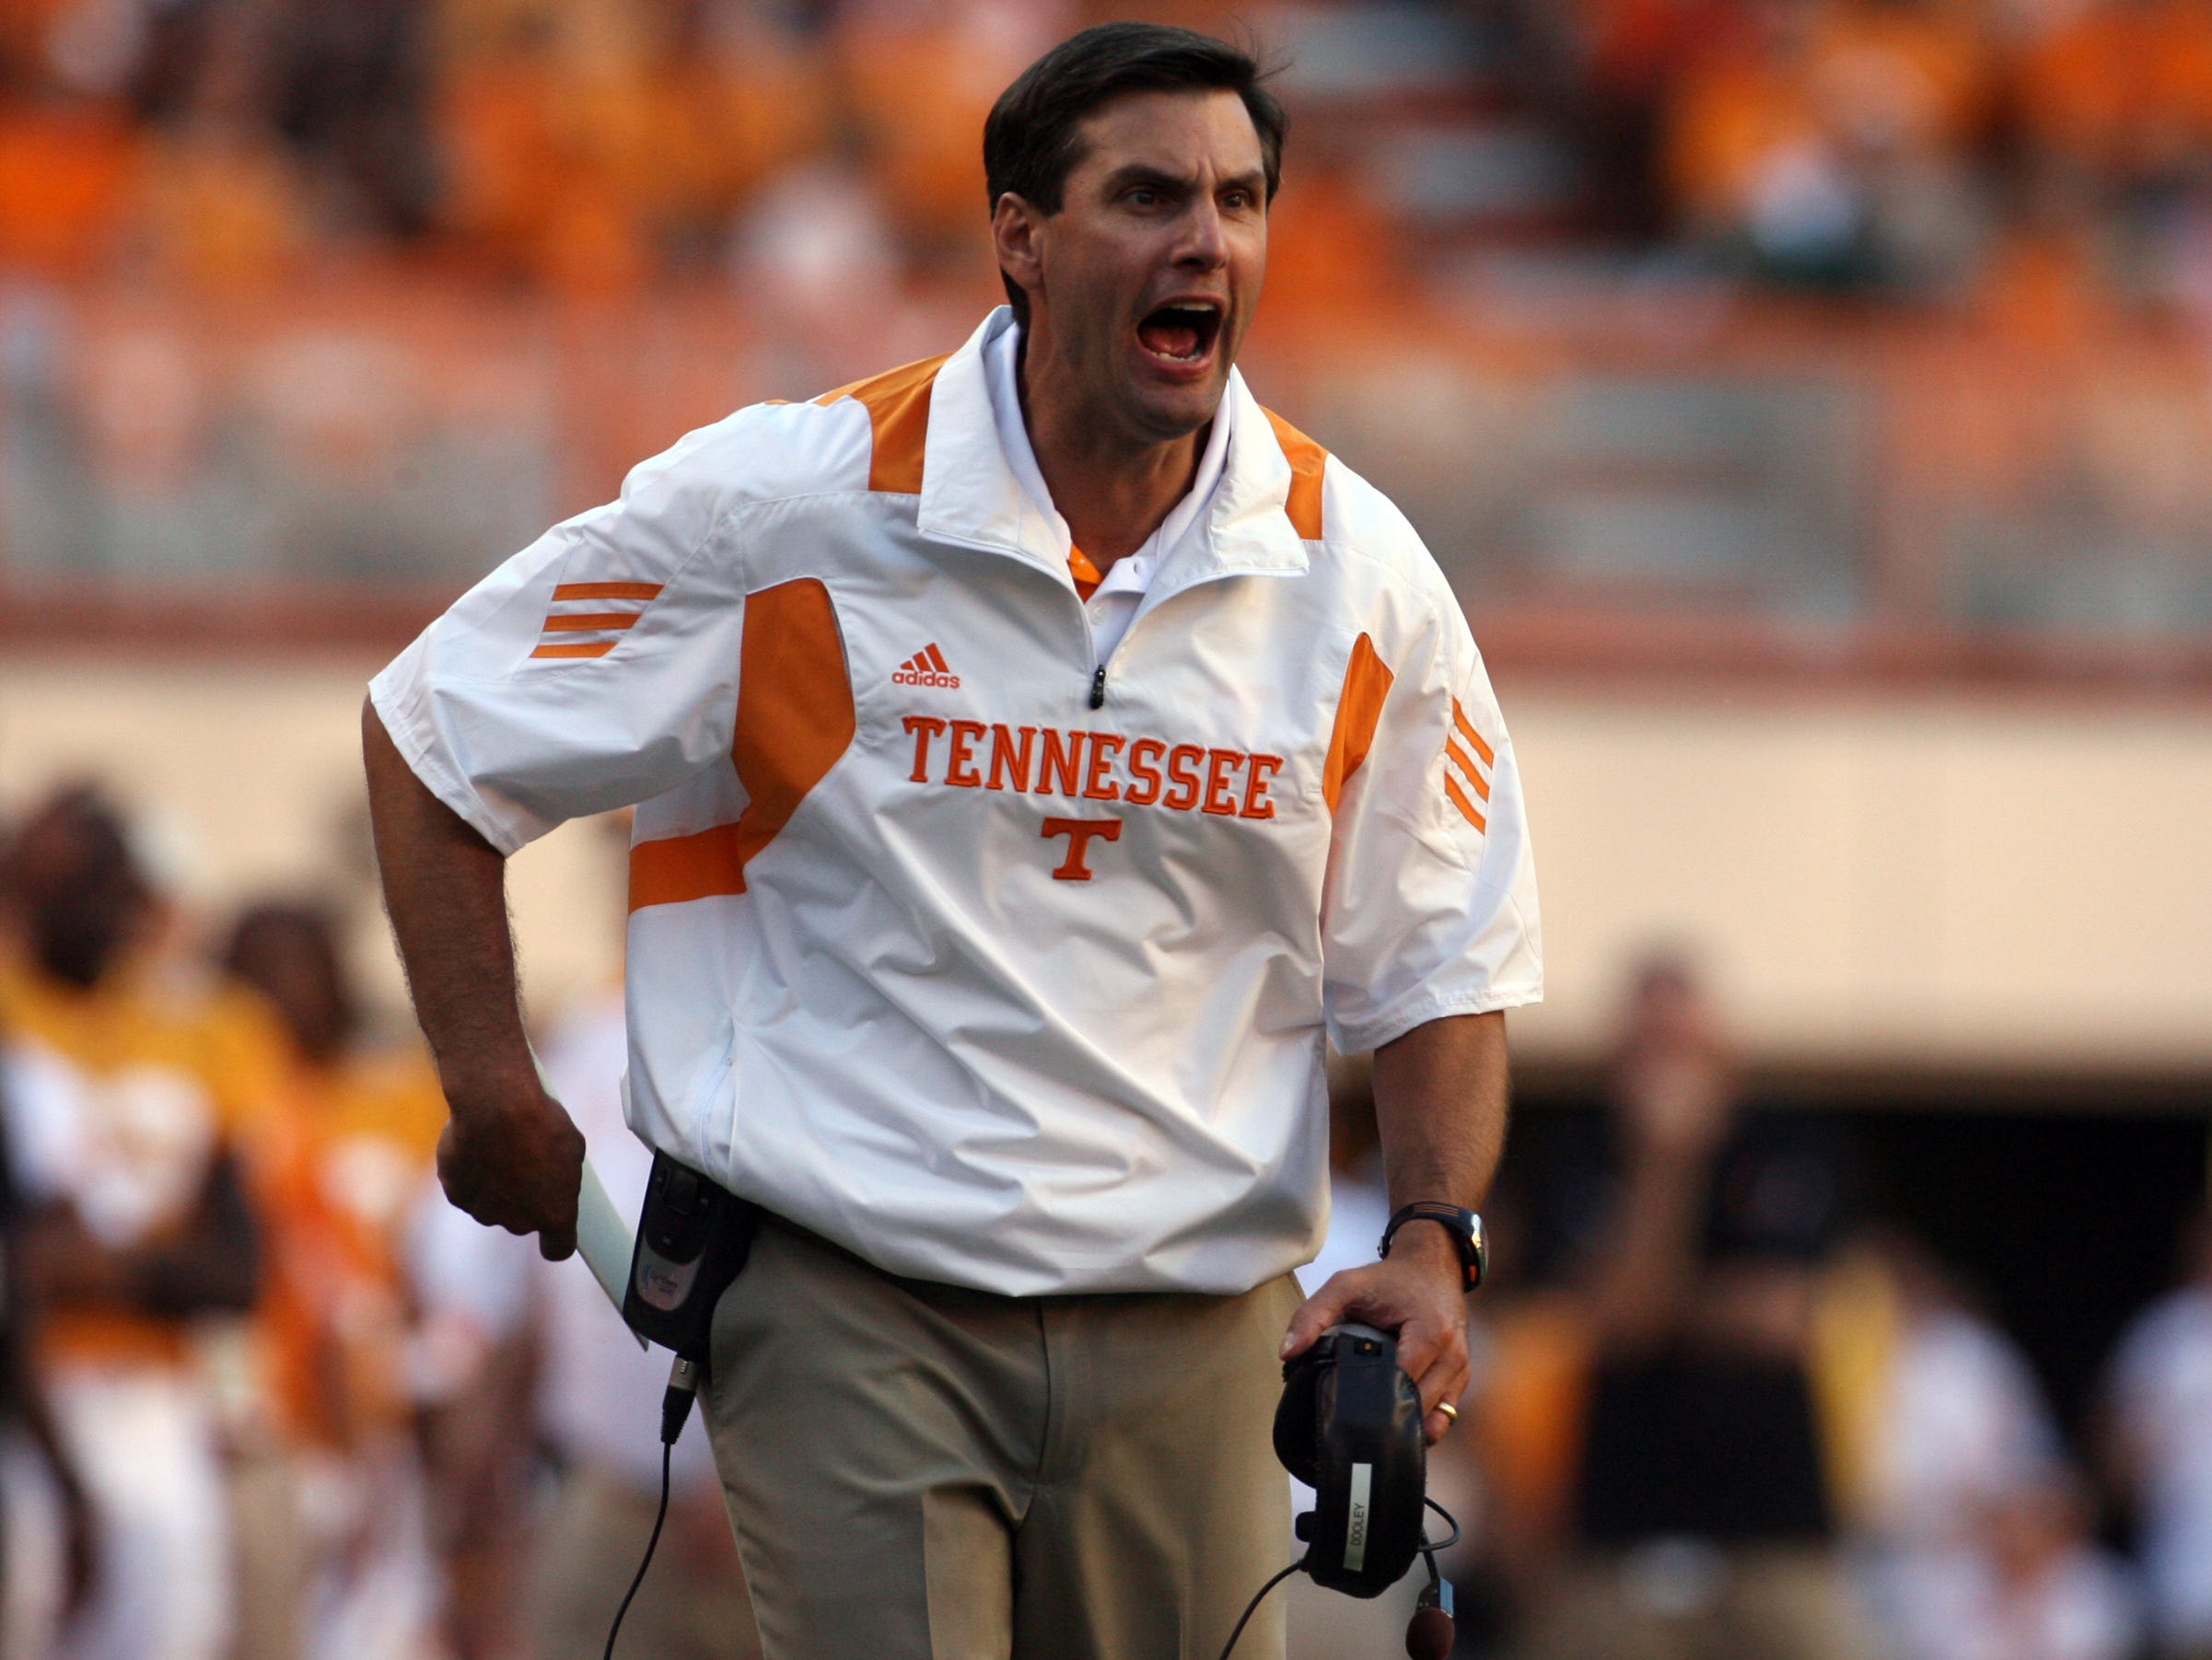 Tennessee head coach Derek Dooley calls to his players during the game against UT Martin at Neyland Stadium Saturday, Sept. 4, 2010.